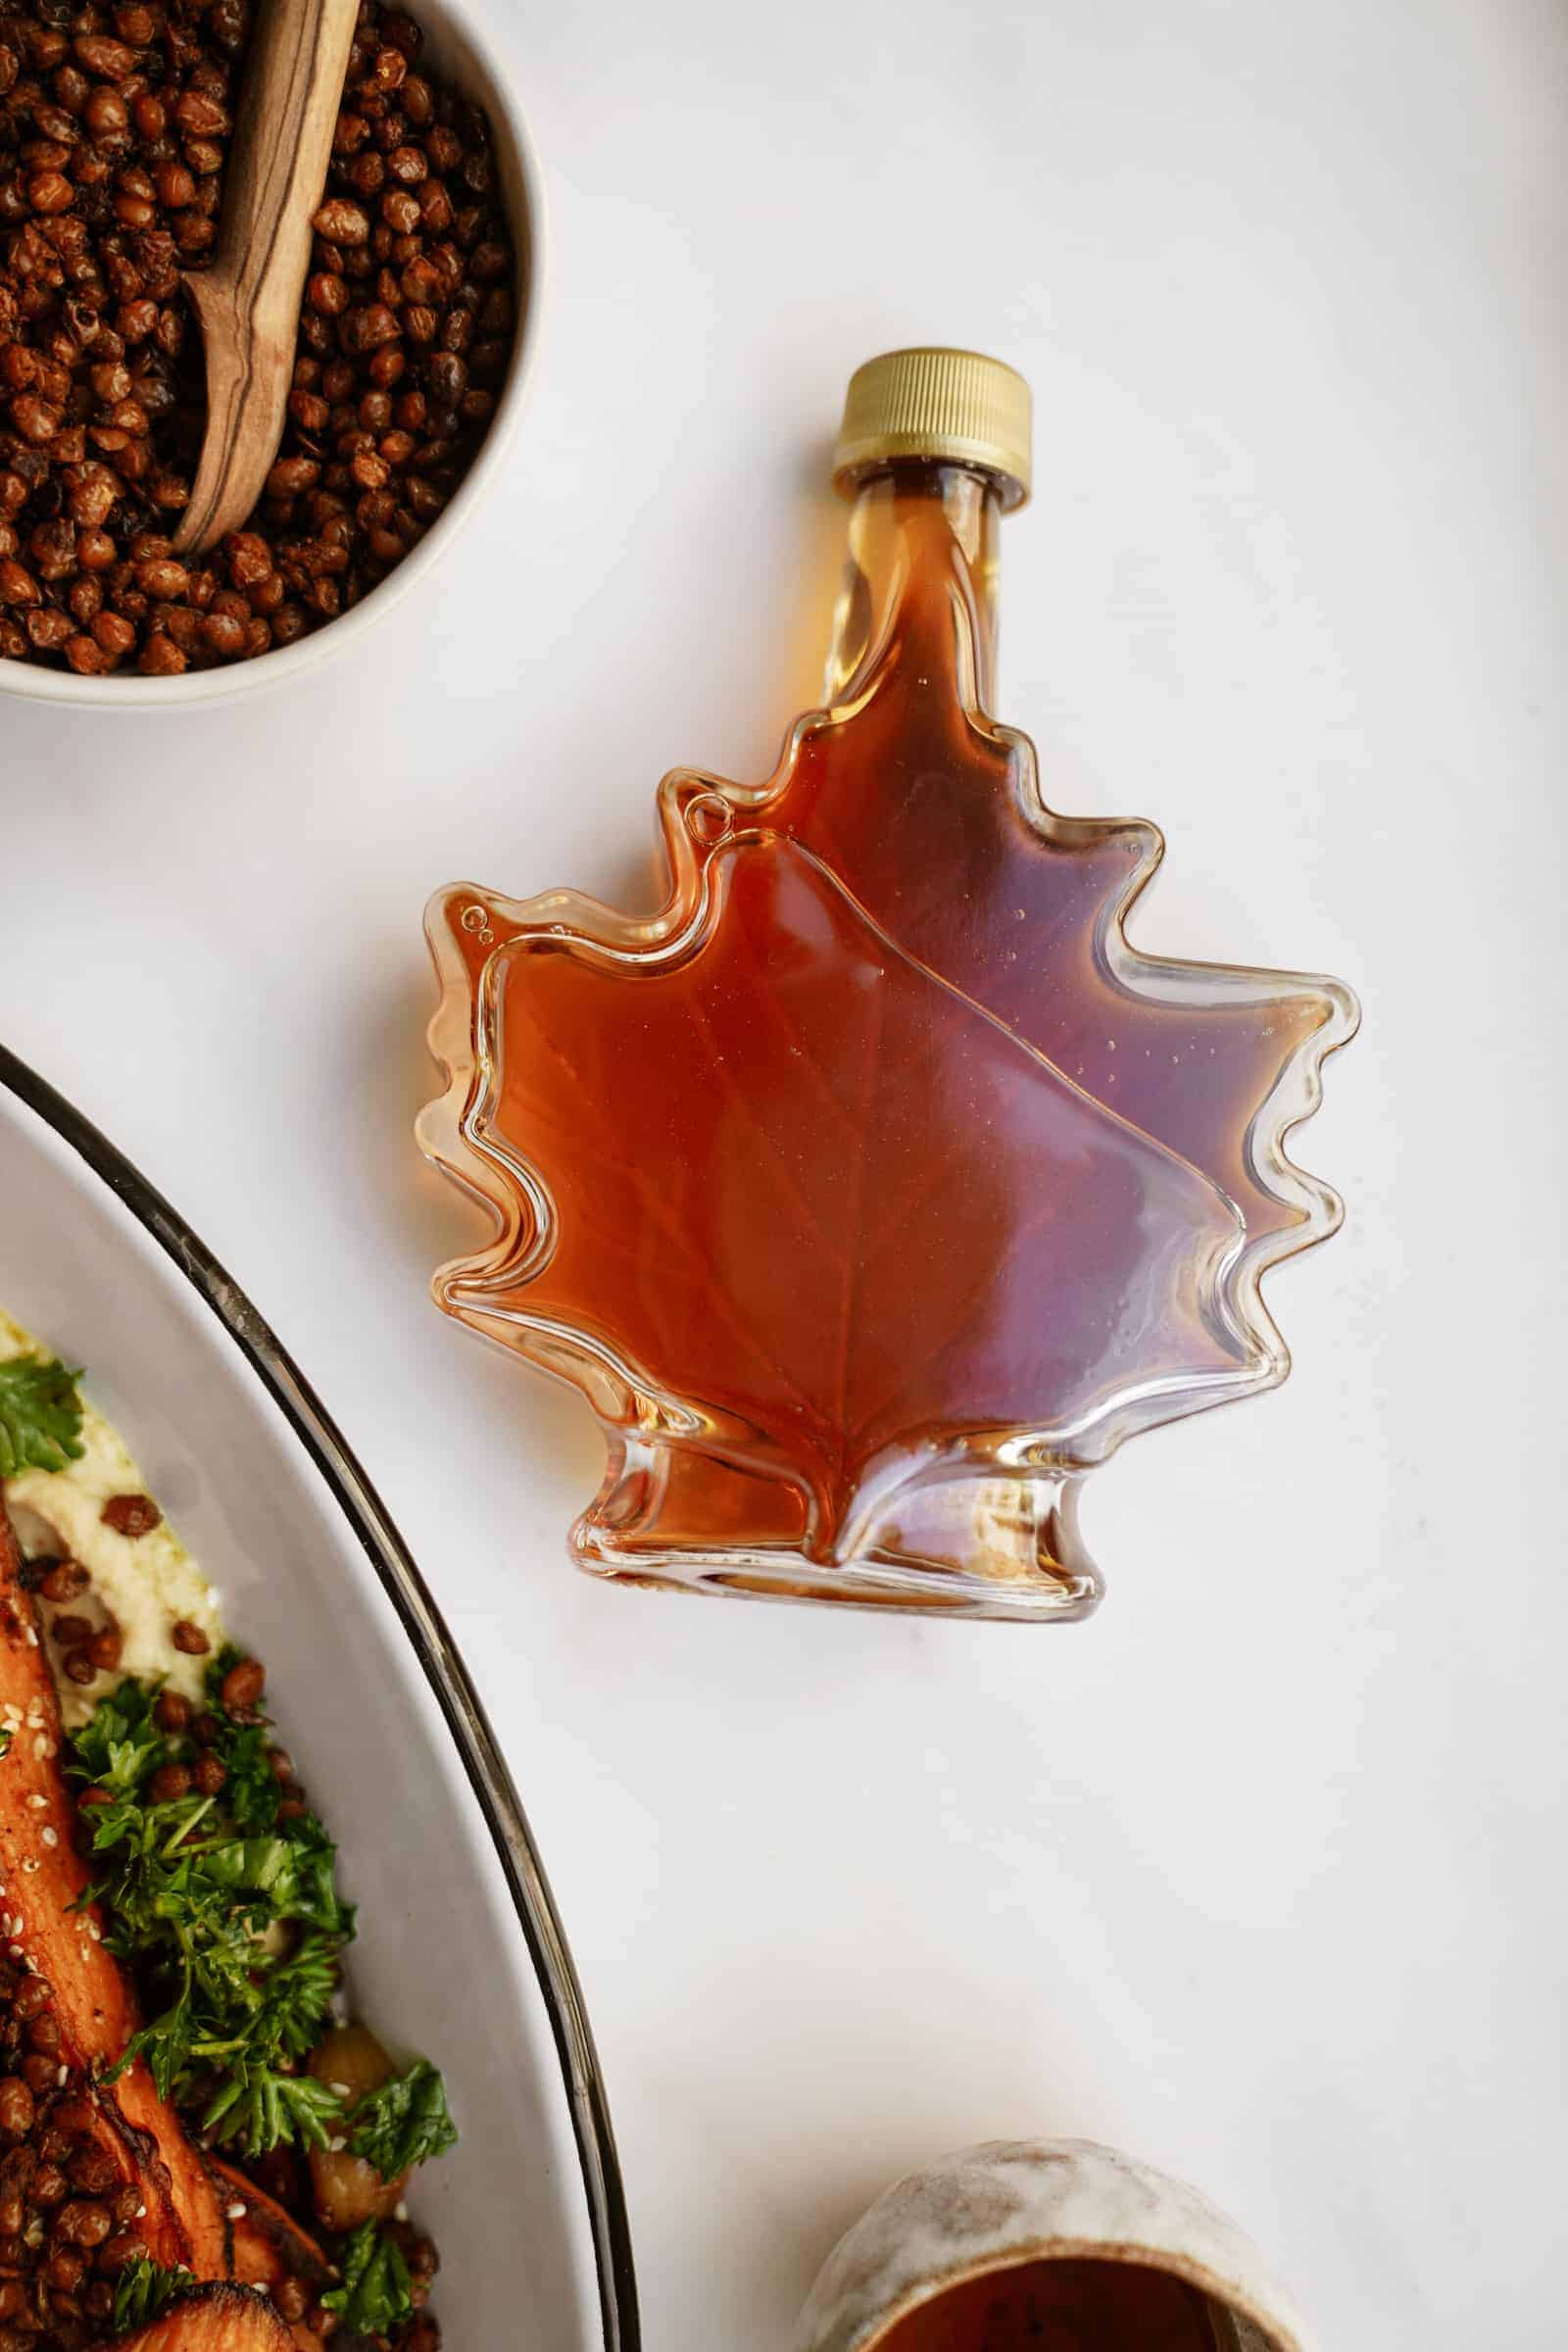 Bottle of Canadian maple syrup on a counter